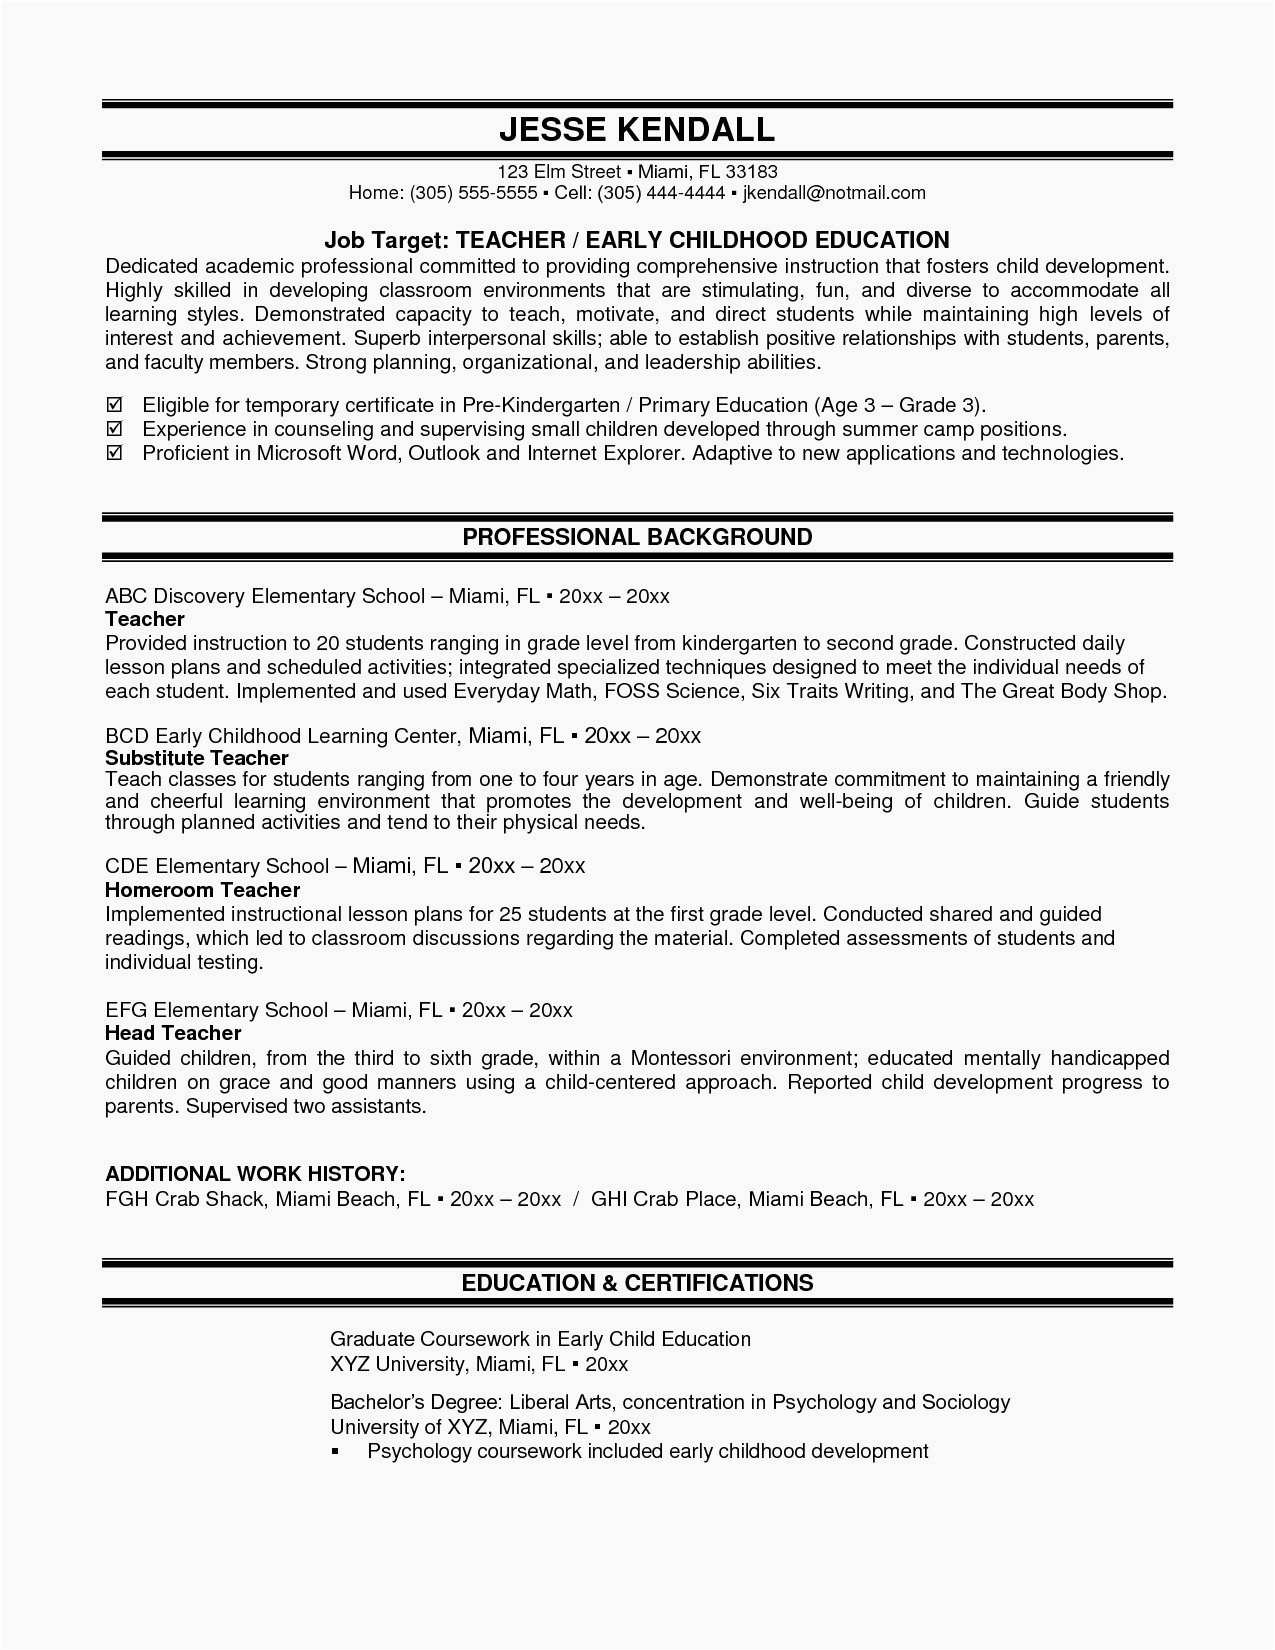 Multitasking On Resume - 21 New Words to Put A Resume New